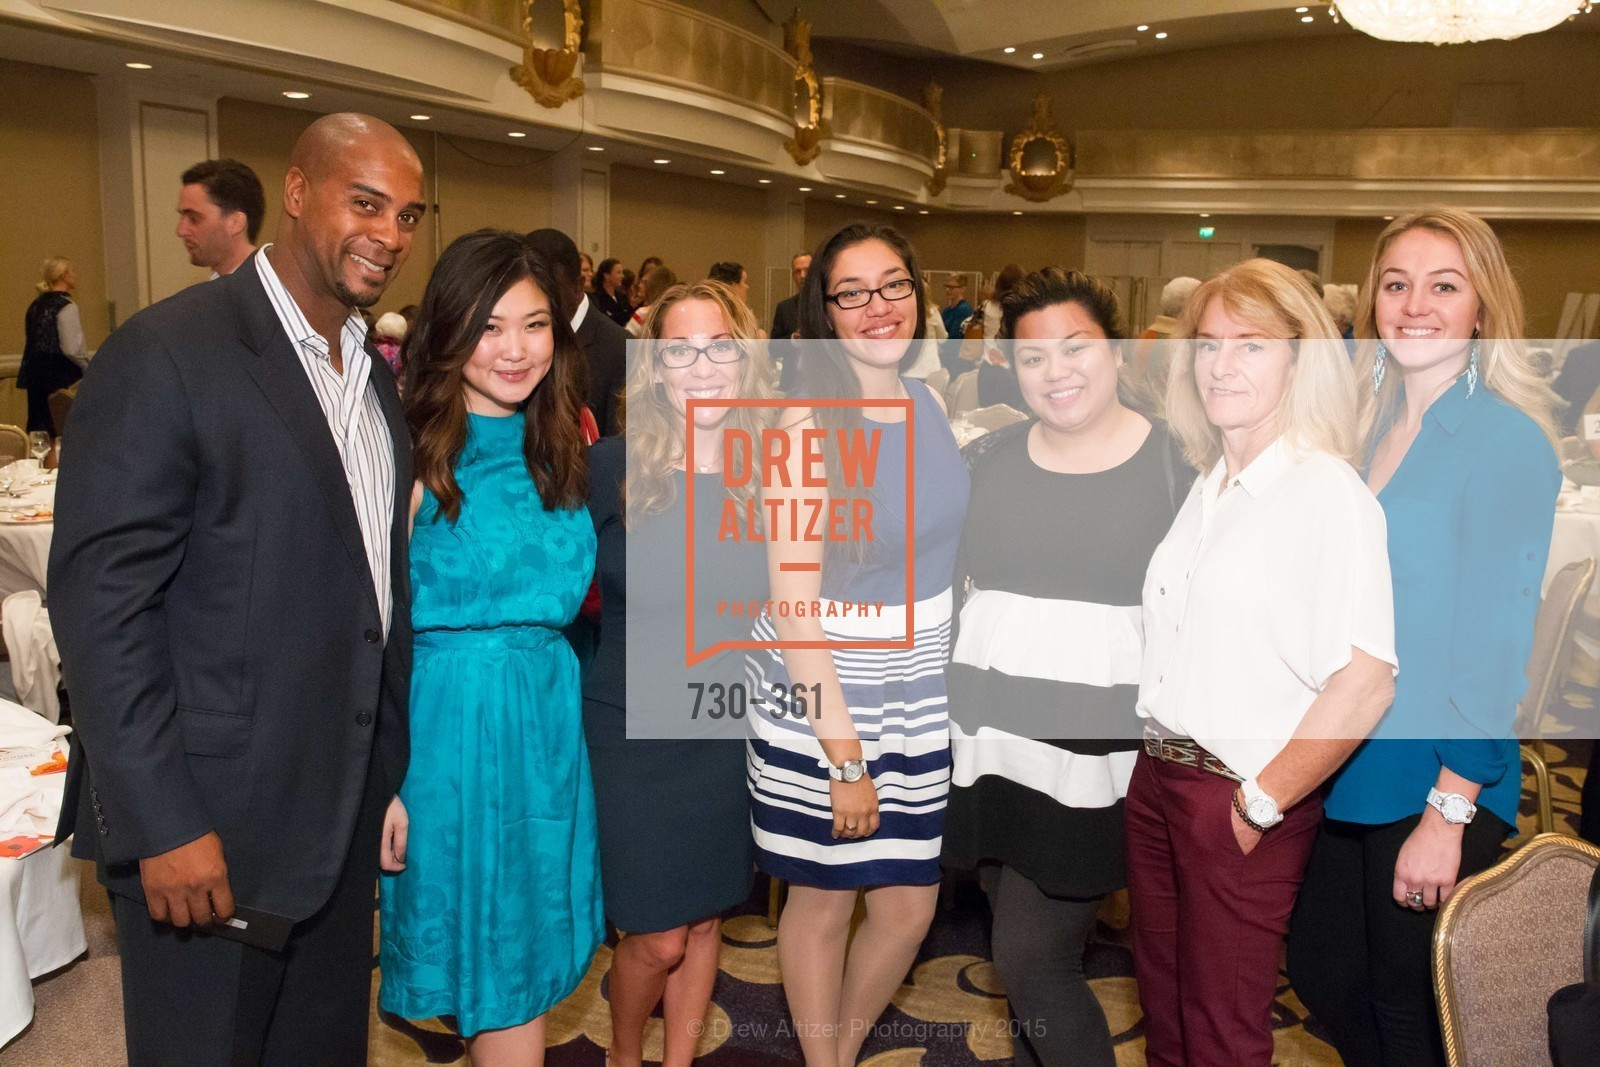 Eric Johnson, Victoria Nguyen, Tamara Johnson, Andrea Quincinia, Monay Lacapp, Gay Harris, Summer Harris, Homeless Prenatal Programs Annual Luncheon, Fairmont Hotel, October 9th, 2015,Drew Altizer, Drew Altizer Photography, full-service agency, private events, San Francisco photographer, photographer california